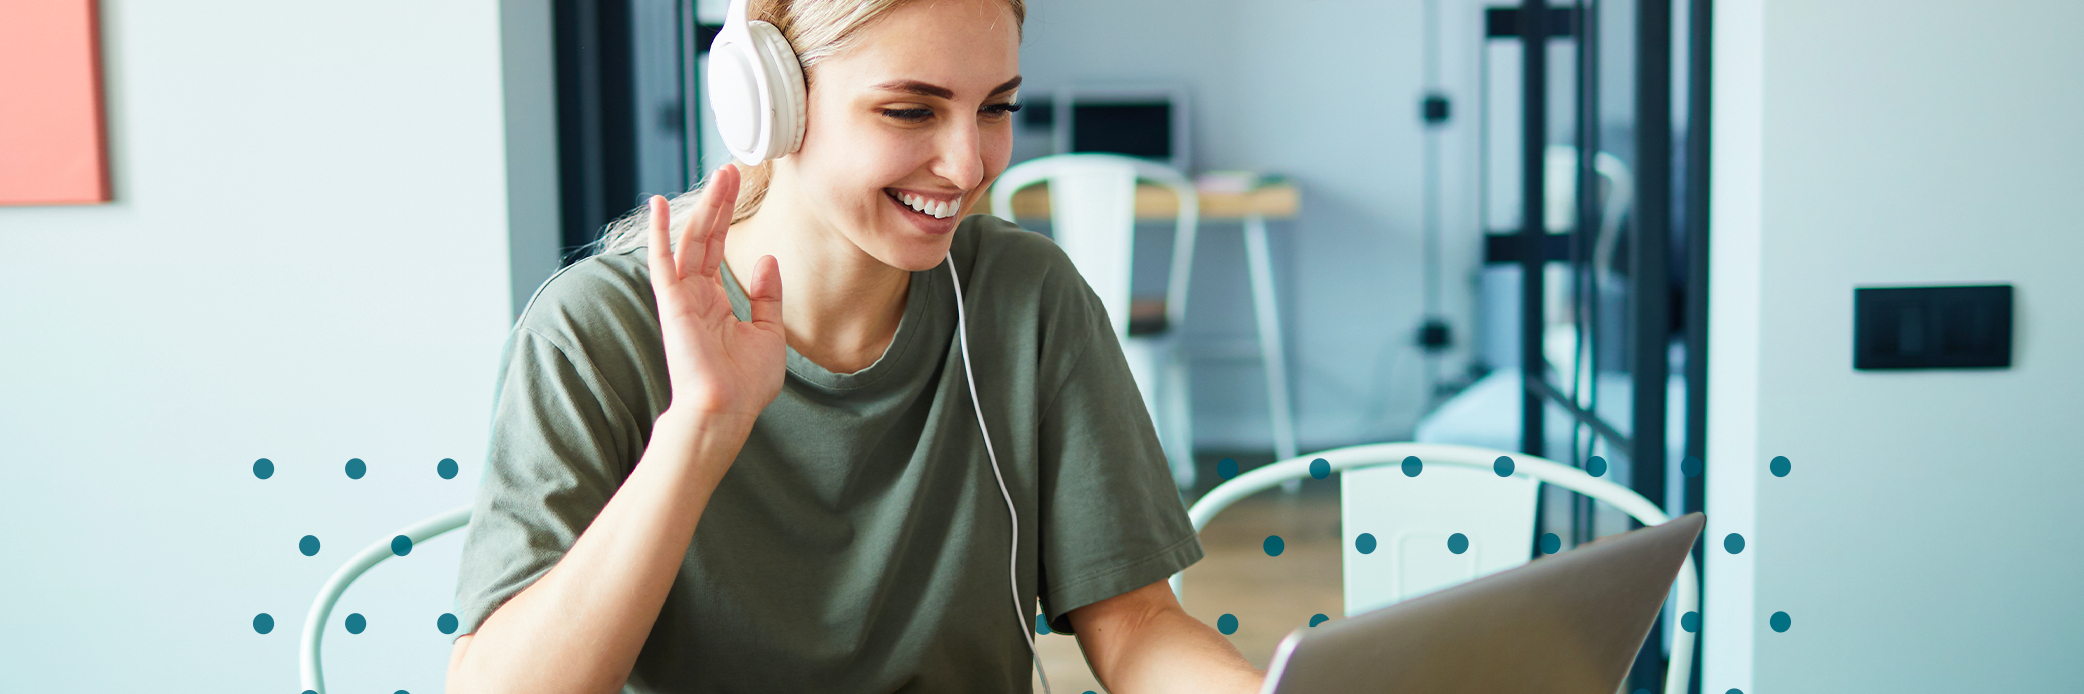 5 Tips to Engage Gen Z and Millennial eLearners in 2020 and Beyond [Webinar Recap]